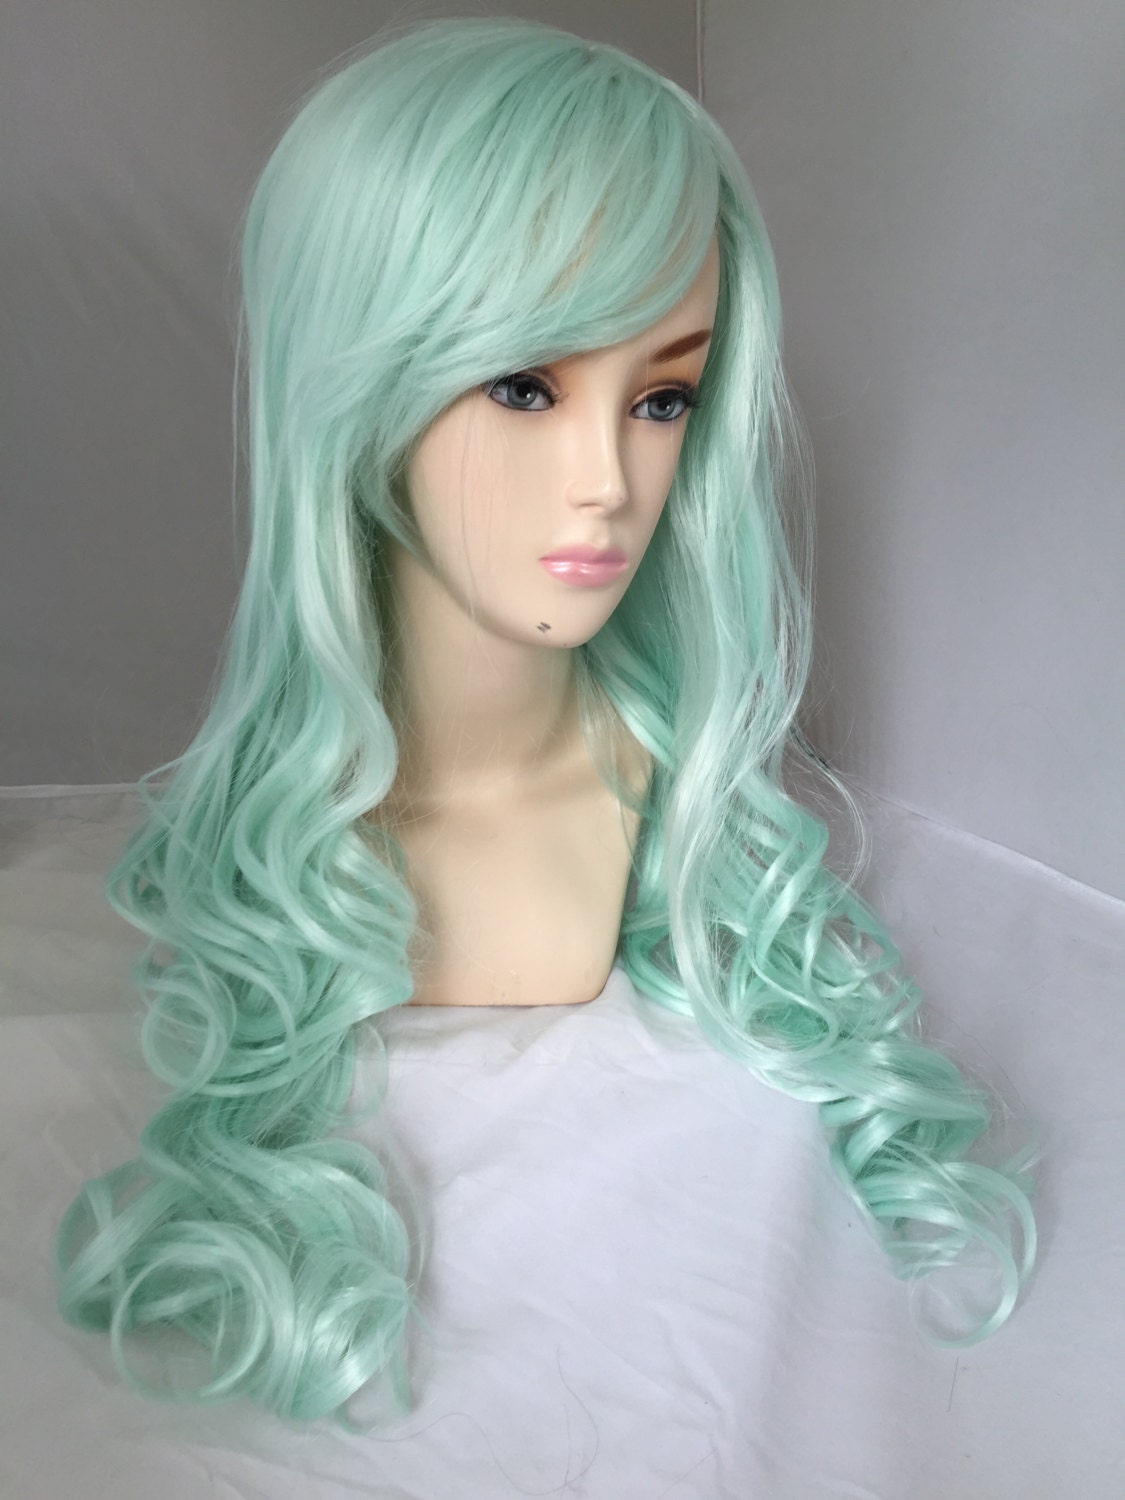 Light Mint Green / Long Curly Layered Wig Mermaid Hair by ... |Mint Hair Wig